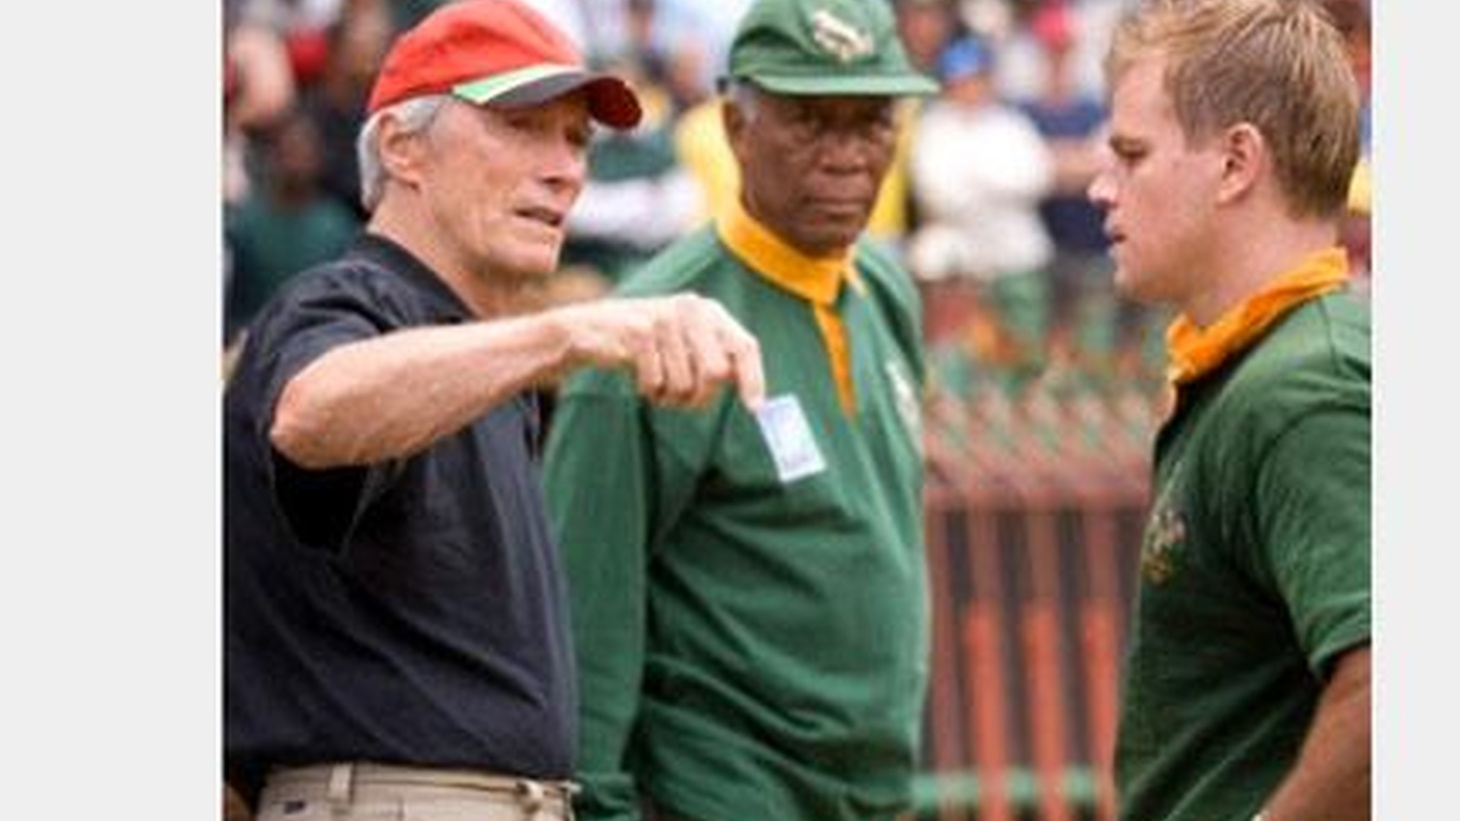 Until now, America's curiosity about rugby has been on a par with its knowledge, but this could change with the advent of Invictus... Clint Eastwood's new movie is an inspirational game played by Morgan Freeman as Nelson Mandela, and Matt Damon as the captain of a South African rugby team...  Peter Jackson's The Lovely Bones was adapted from Alice Sebold's widely admired novel. The movie, like the book, is party set in an Inbetween that occupies an ethereal space between heaven and earth; it's the vantage point from which the young heroine watches over her family after her death at the hands of a monstrous pervert...